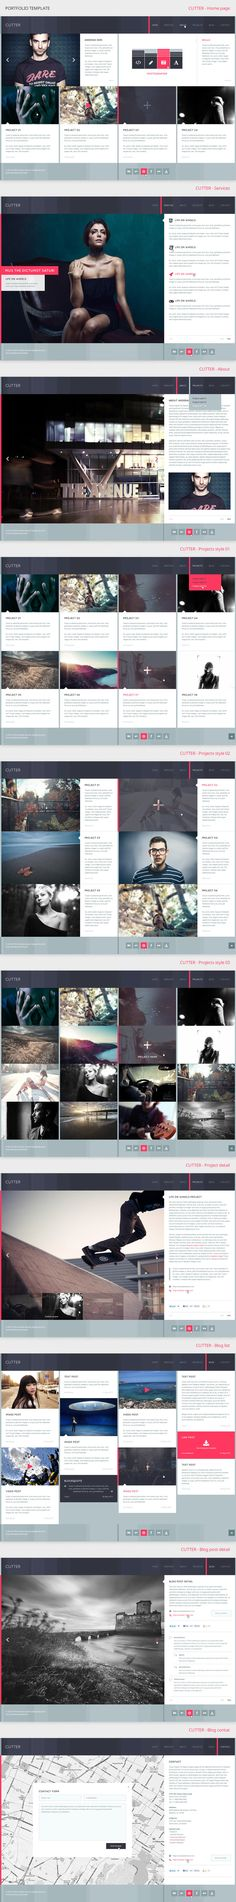 CUTTER - Fullwidth Portfolio  via @Behance   http://www.behance.net/gallery/CUTTER-Fullwidth-Portfolio-Template/9173563?utm_source=Triggermail_medium=email_campaign=Net%20Project%20Published | #webdesign #it #web #design #layout #userinterface #website #webdesign < repinned by www.BlickeDeeler.de | Take a look at www.WebsiteDesign-Hamburg.de